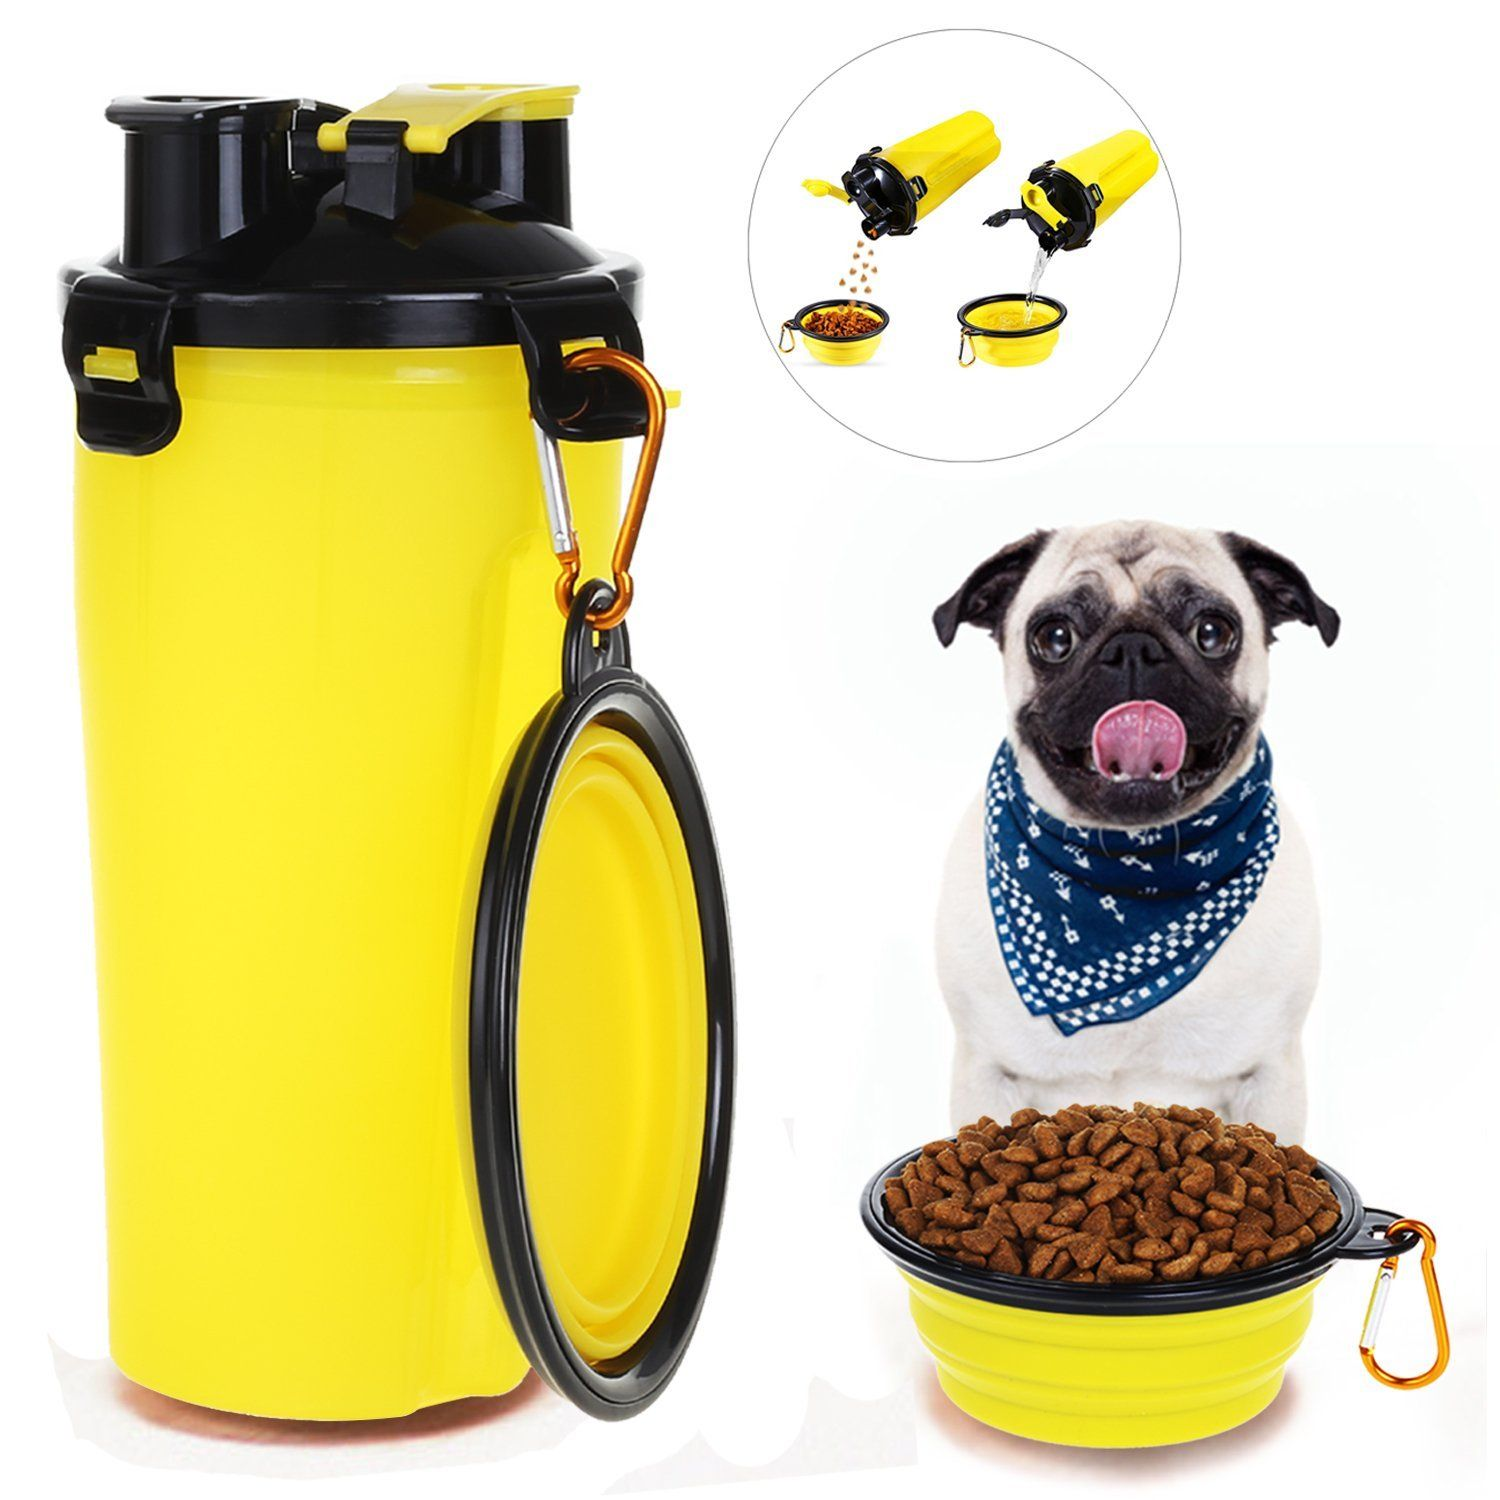 Pet Supplies Hapito Travel Pet Water Bottle Dog Water Dispenser With Bowl 2 In 1 Portable Dog Mug Food Con Dog